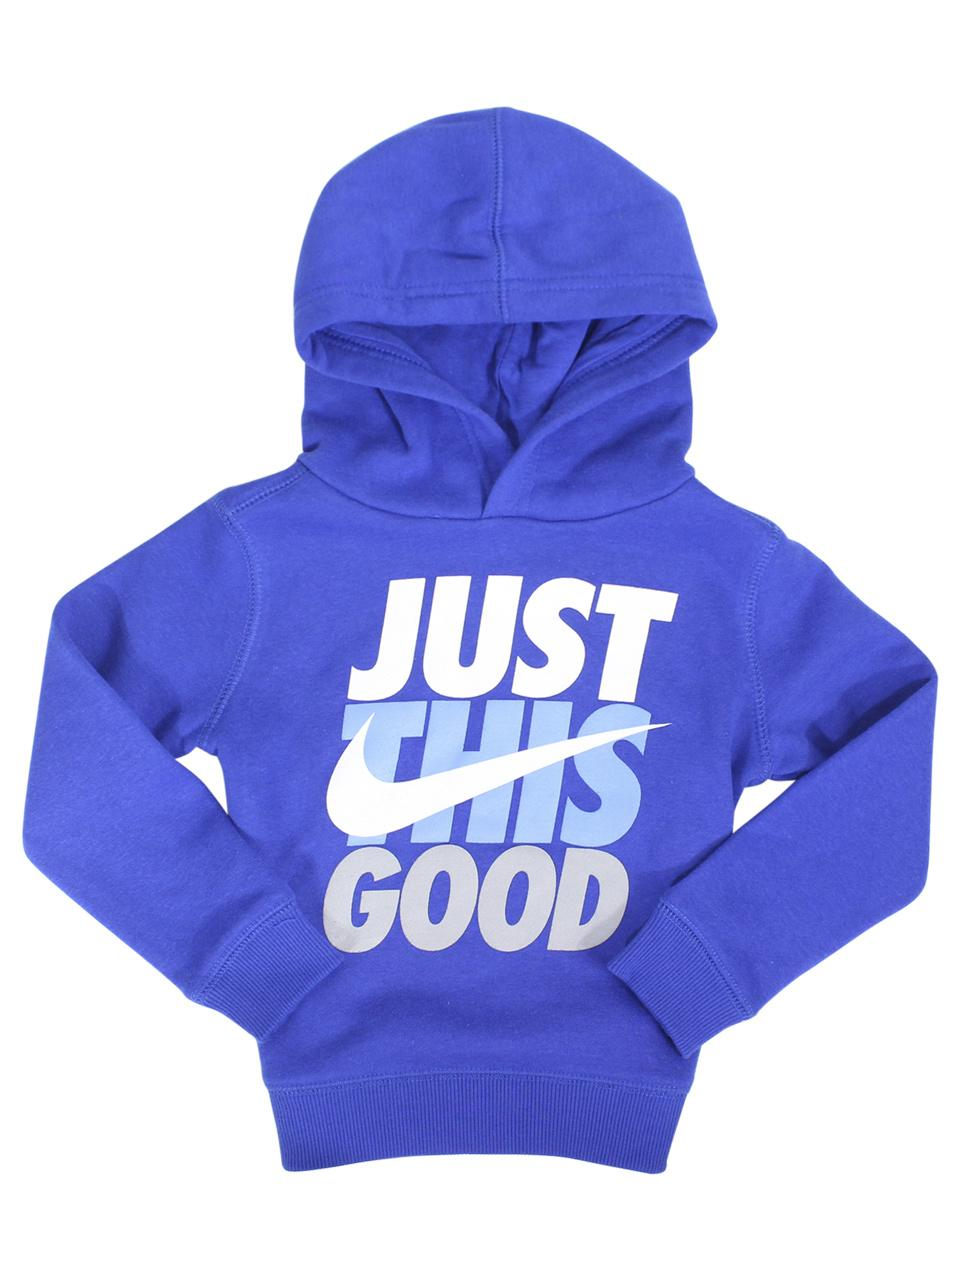 Nike Toddler Boy's Just This Good Pullover Hooded Sweatshirt